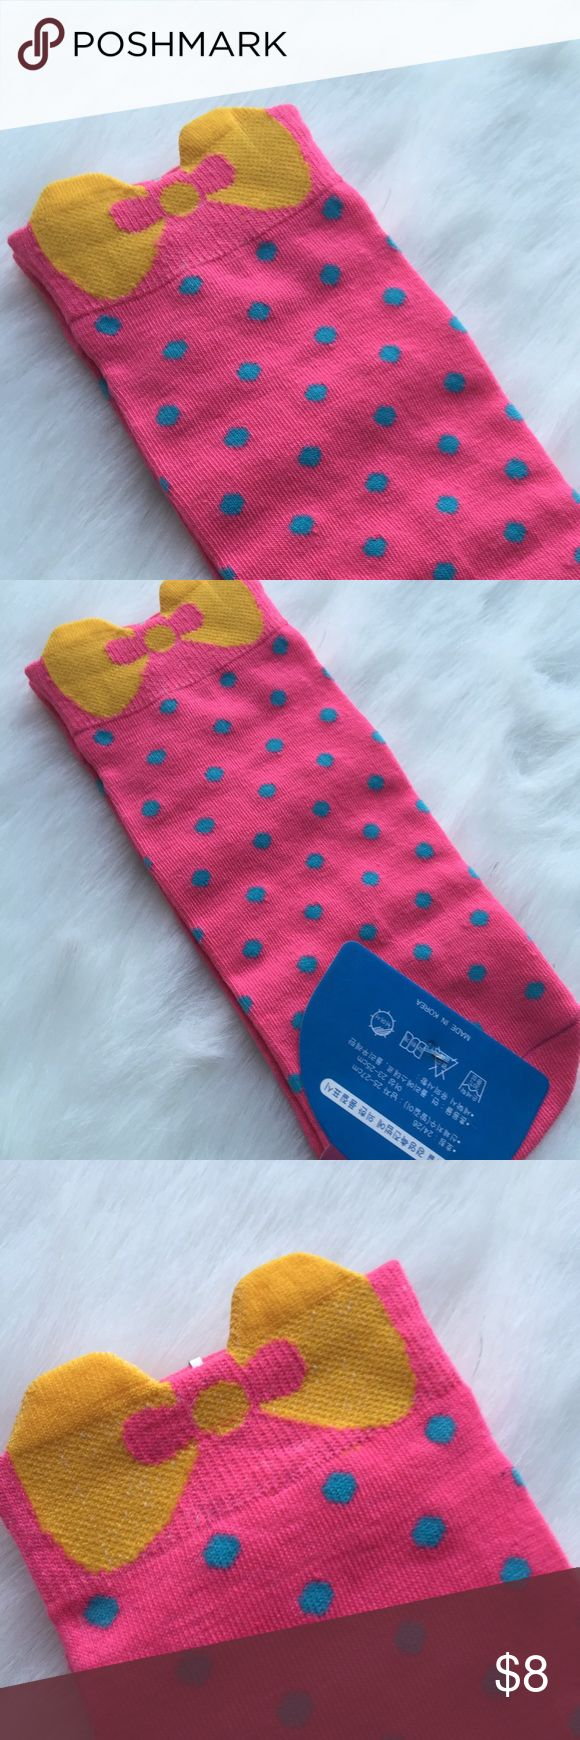 ➰ NEW LISTING ➰ These socks are too cute! Pink background with a spray of polka dots and a mustard yellow bow at the top. Brand new, never worn. Accessories Hosiery & Socks